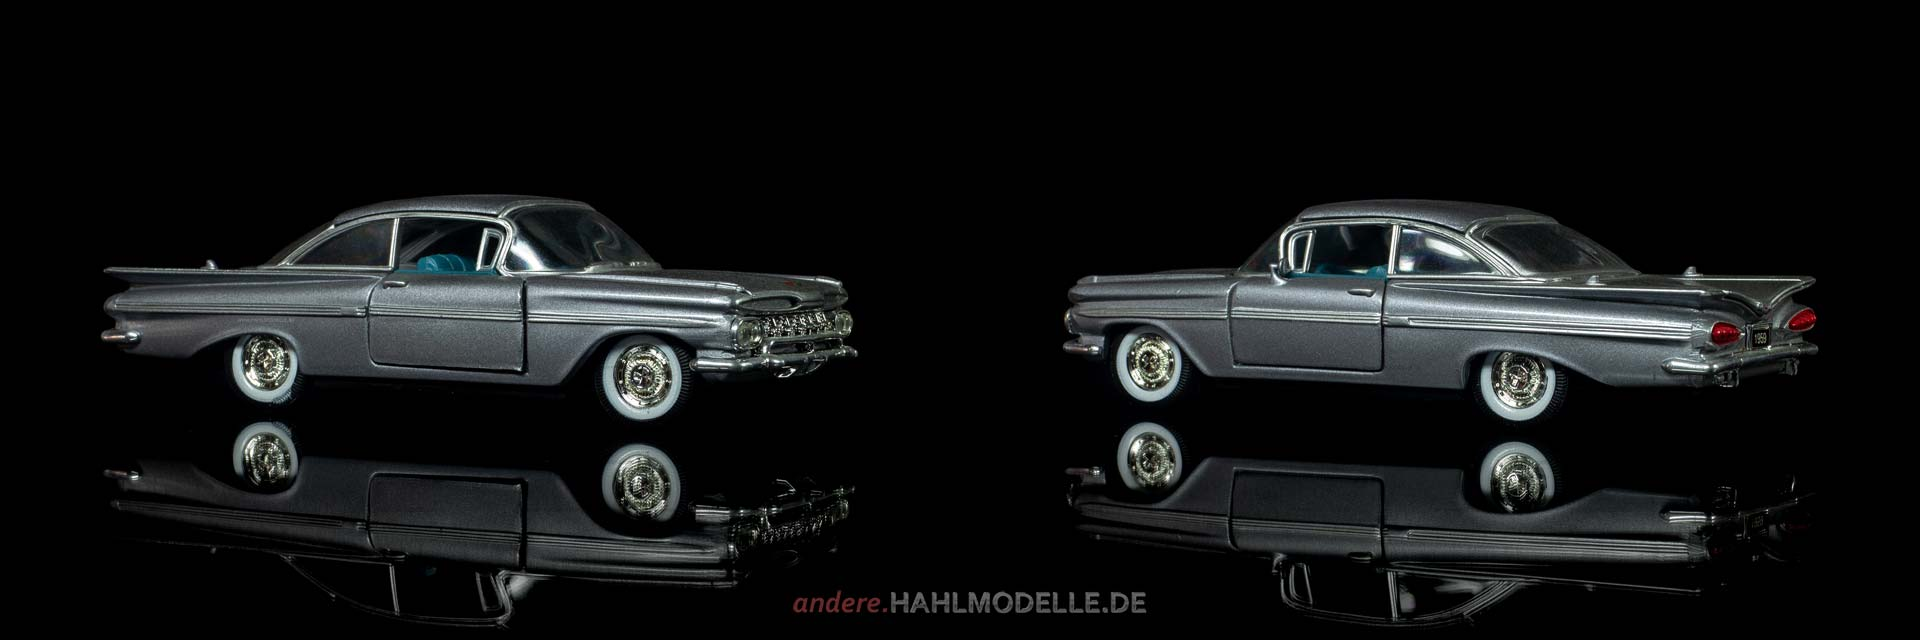 Chevrolet Impala two-door Sedan | Limousine | Road Champs | 1:43 | www.andere.hahlmodelle.de